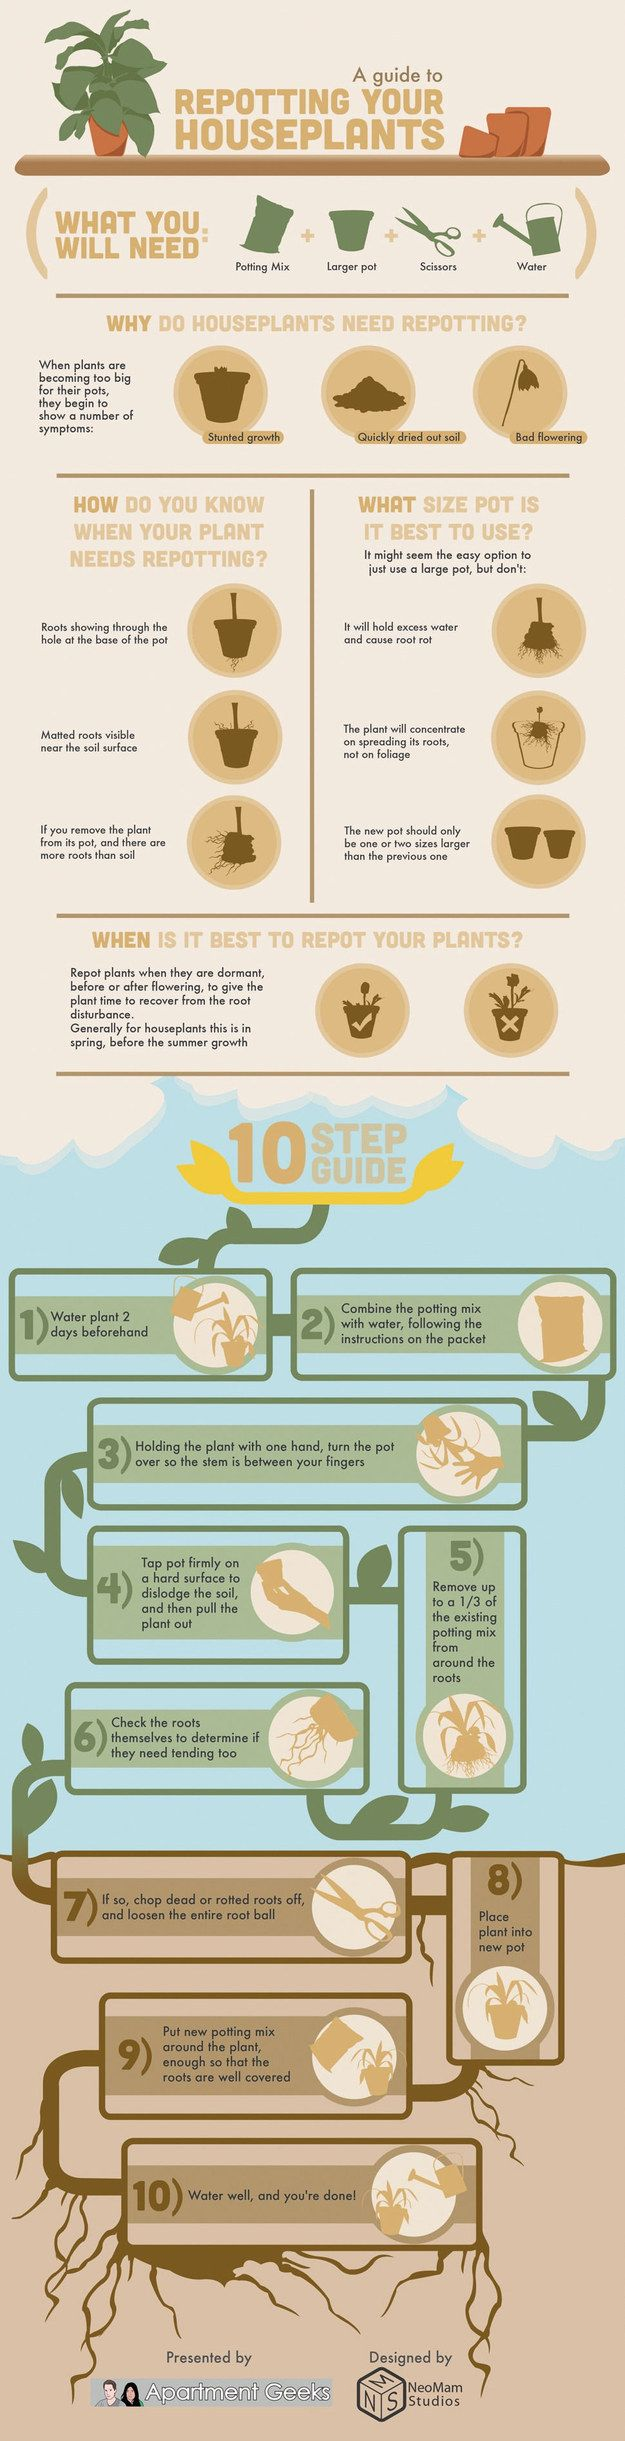 Here's how to repot a houseplant (without killing it). | 23 Absolutely Essential Gardening Diagrams